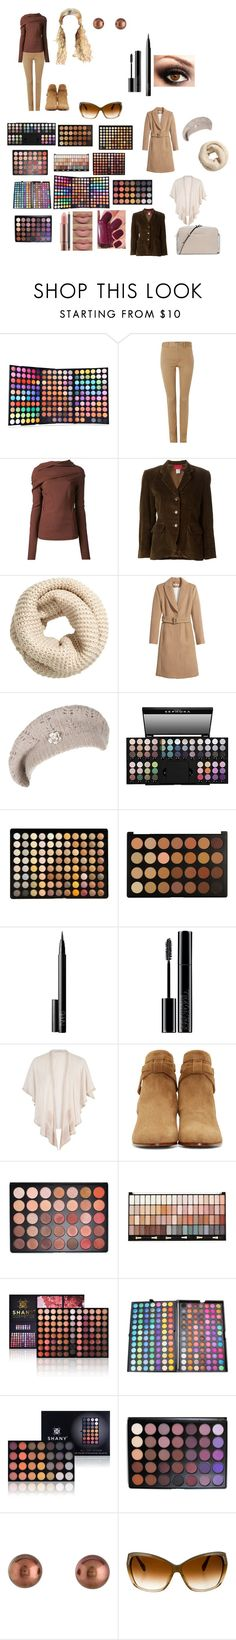 """Untitled #196"" by hani-harel ❤ liked on Polyvore featuring beauty, Polo Ralph Lauren, Rick Owens, Kenzo, H&M, Sephora Collection, BHCosmetics, NARS Cosmetics, Giorgio Armani and Chesca"